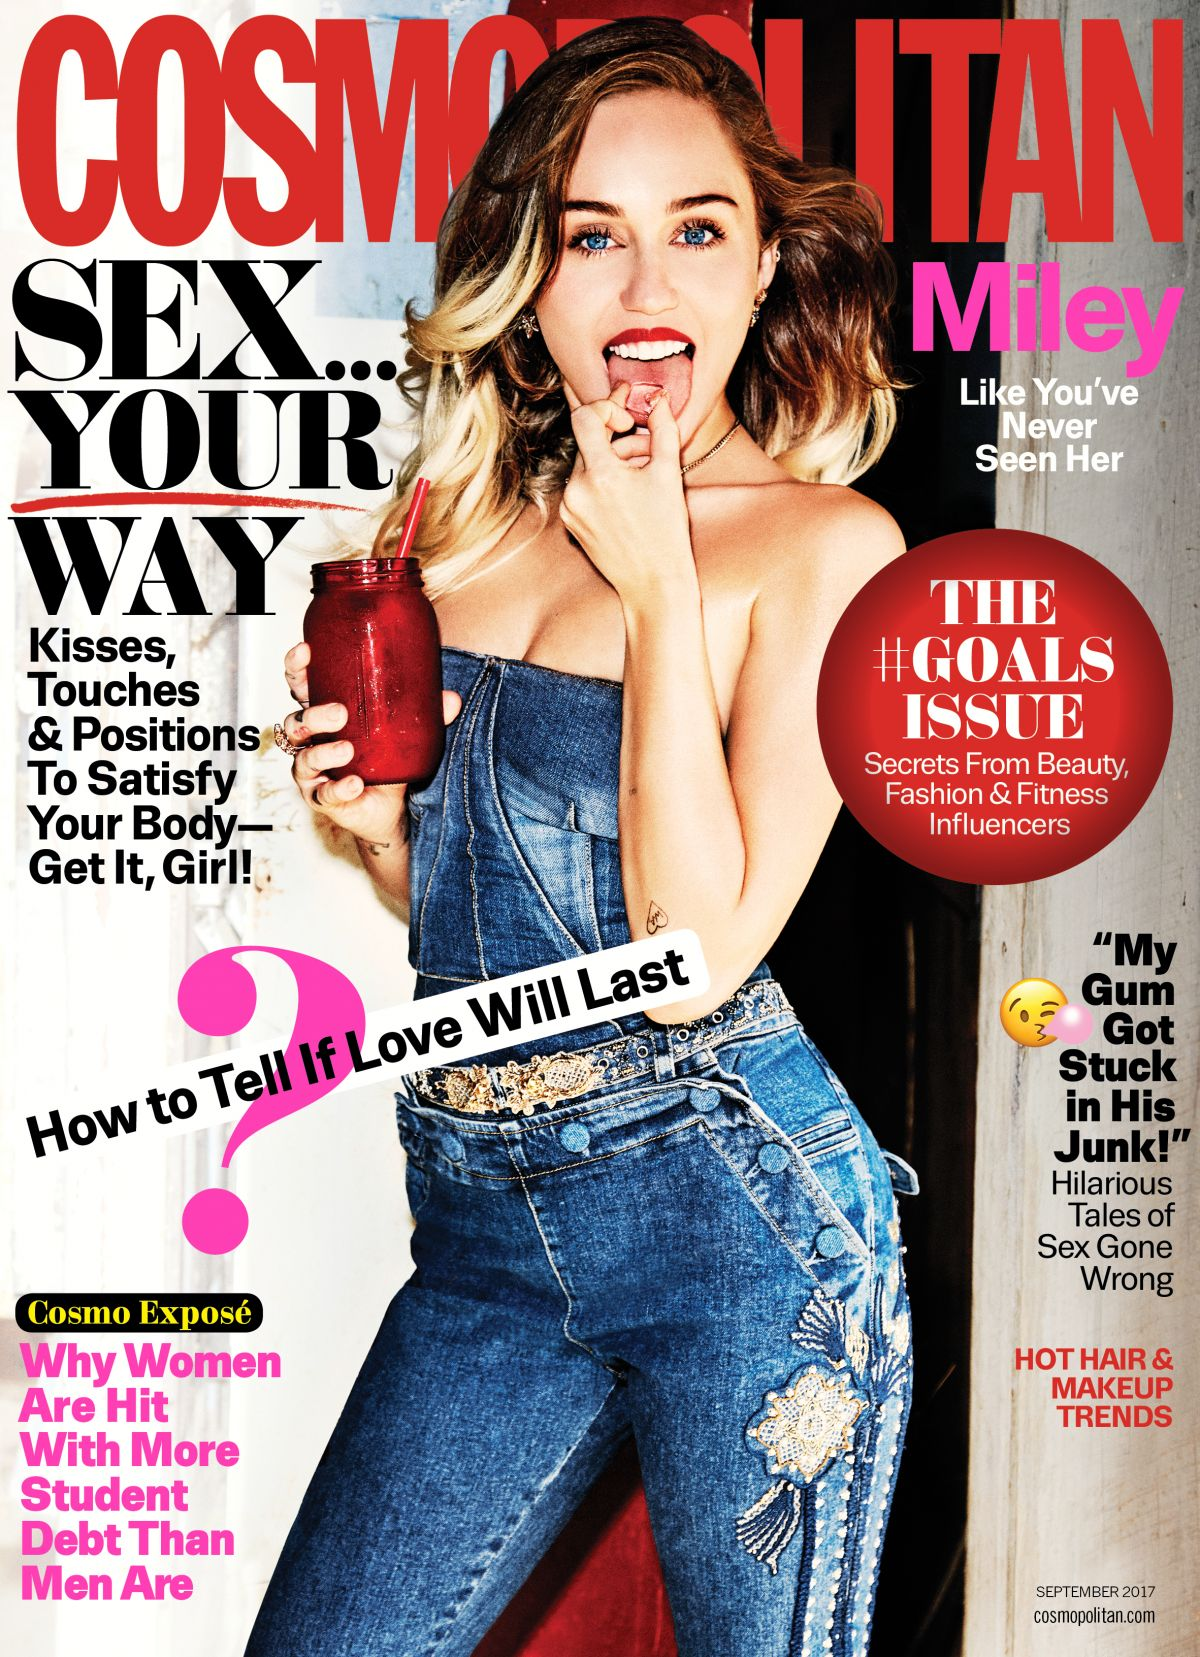 MILEY CYRUS for Cosmopolitan Magazine, September 2017